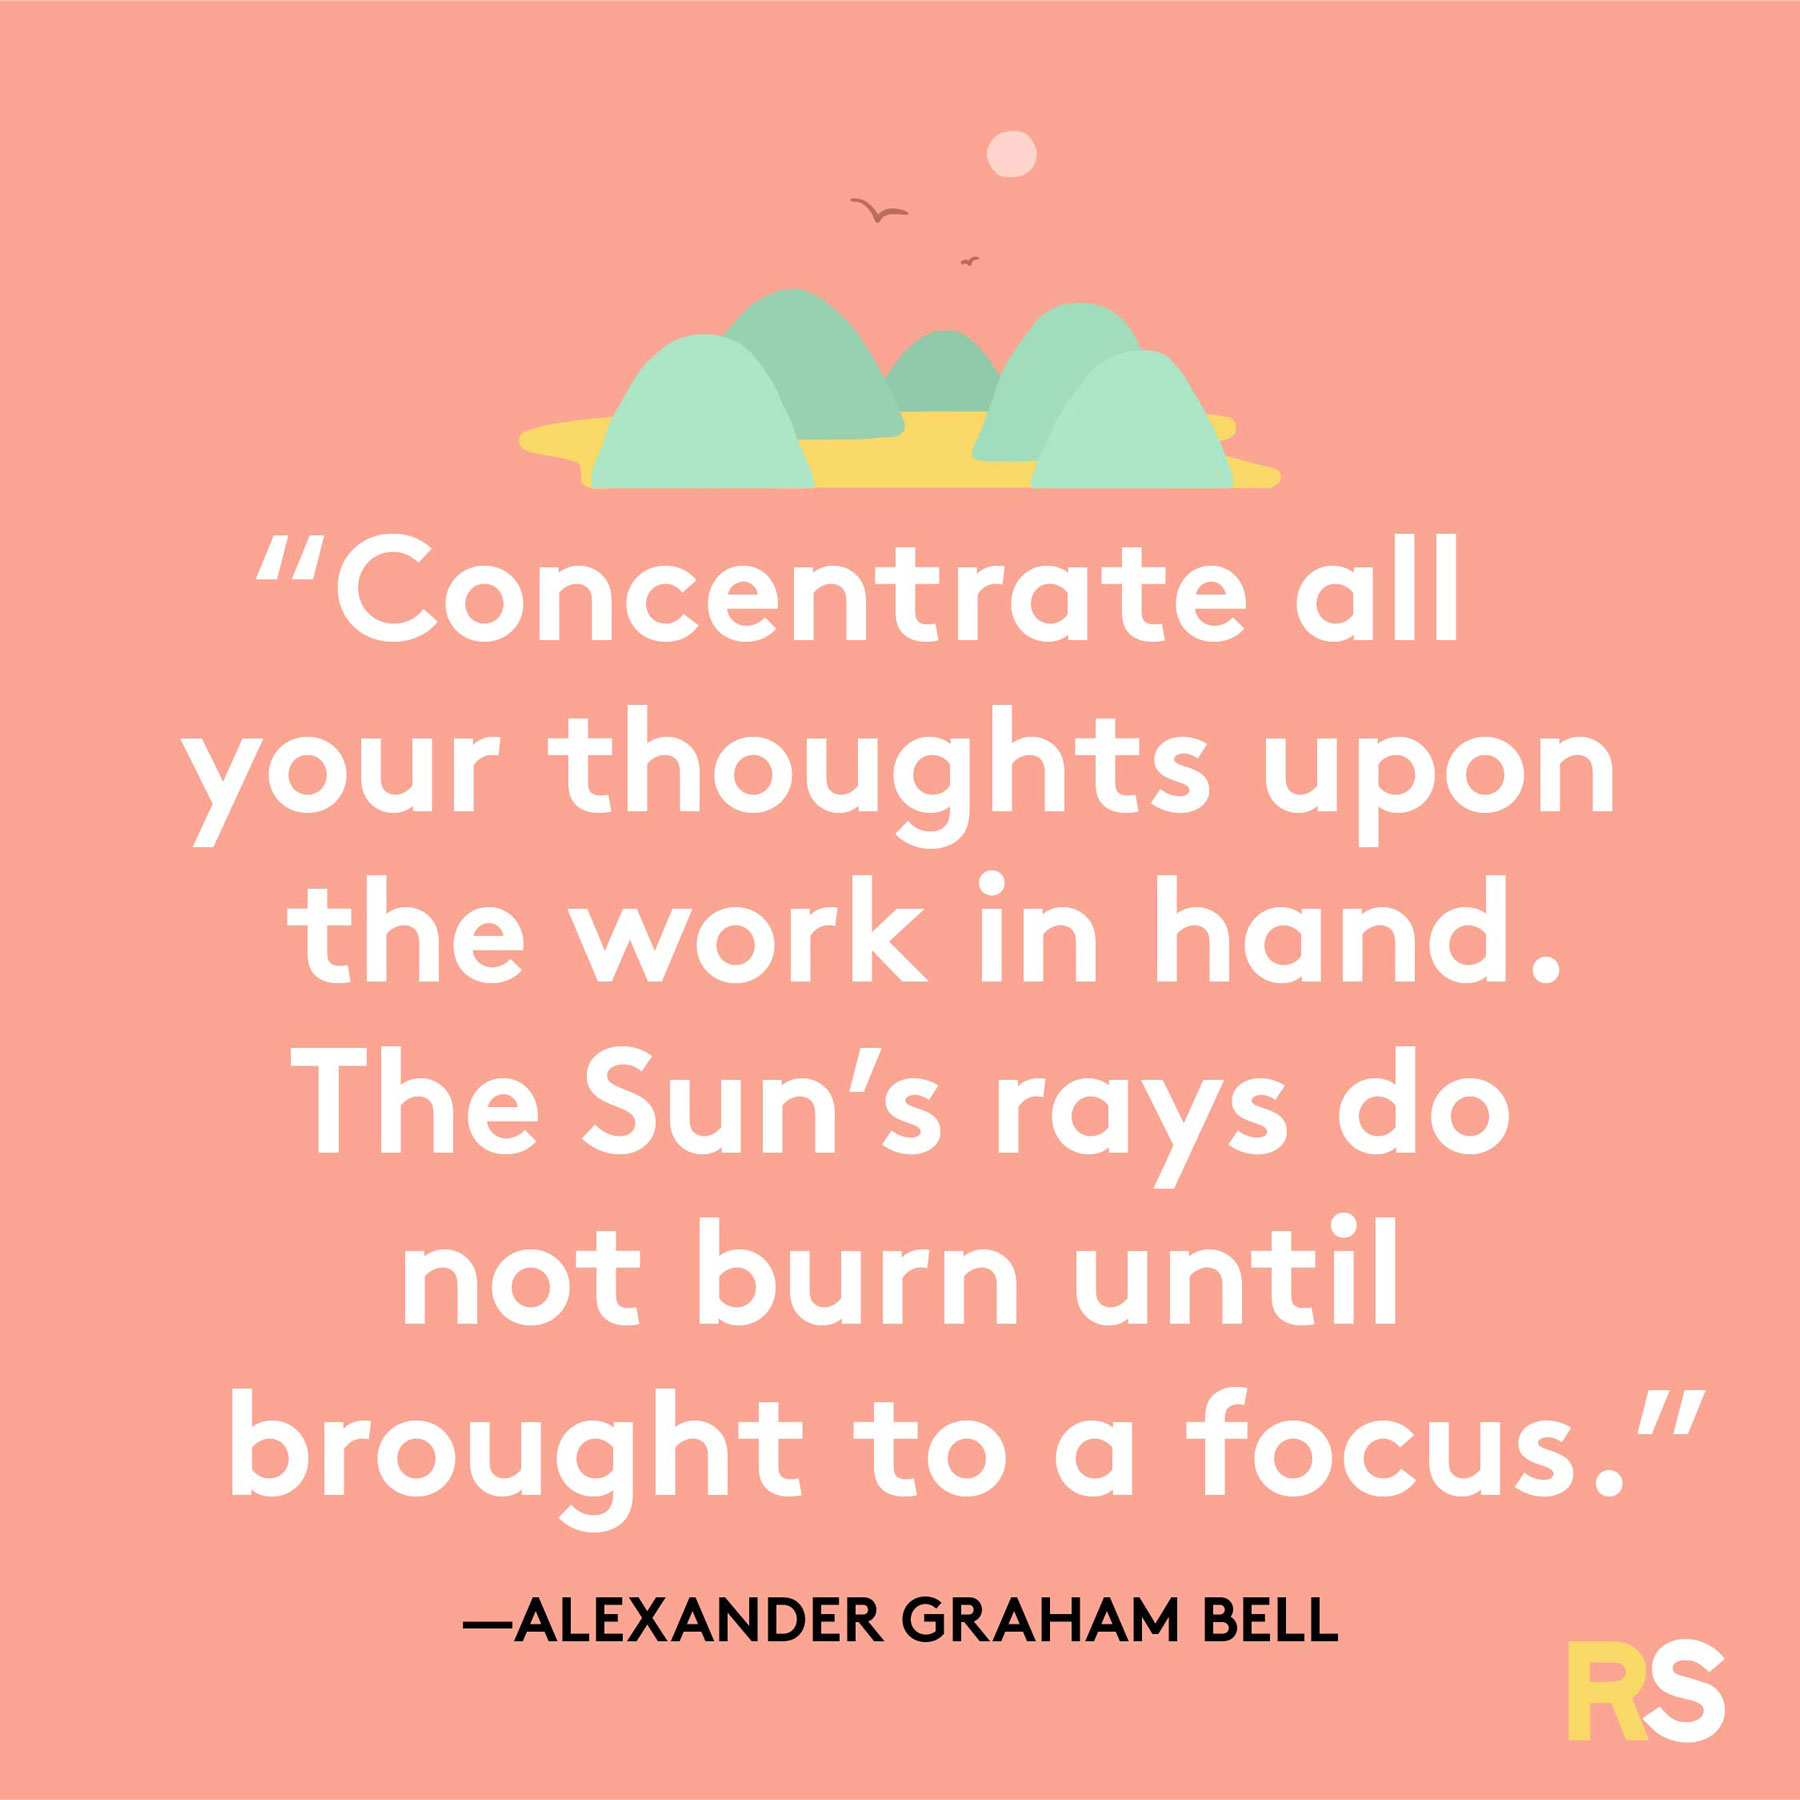 Positive quotes, captions, messages – Alexander Graham Bell quote